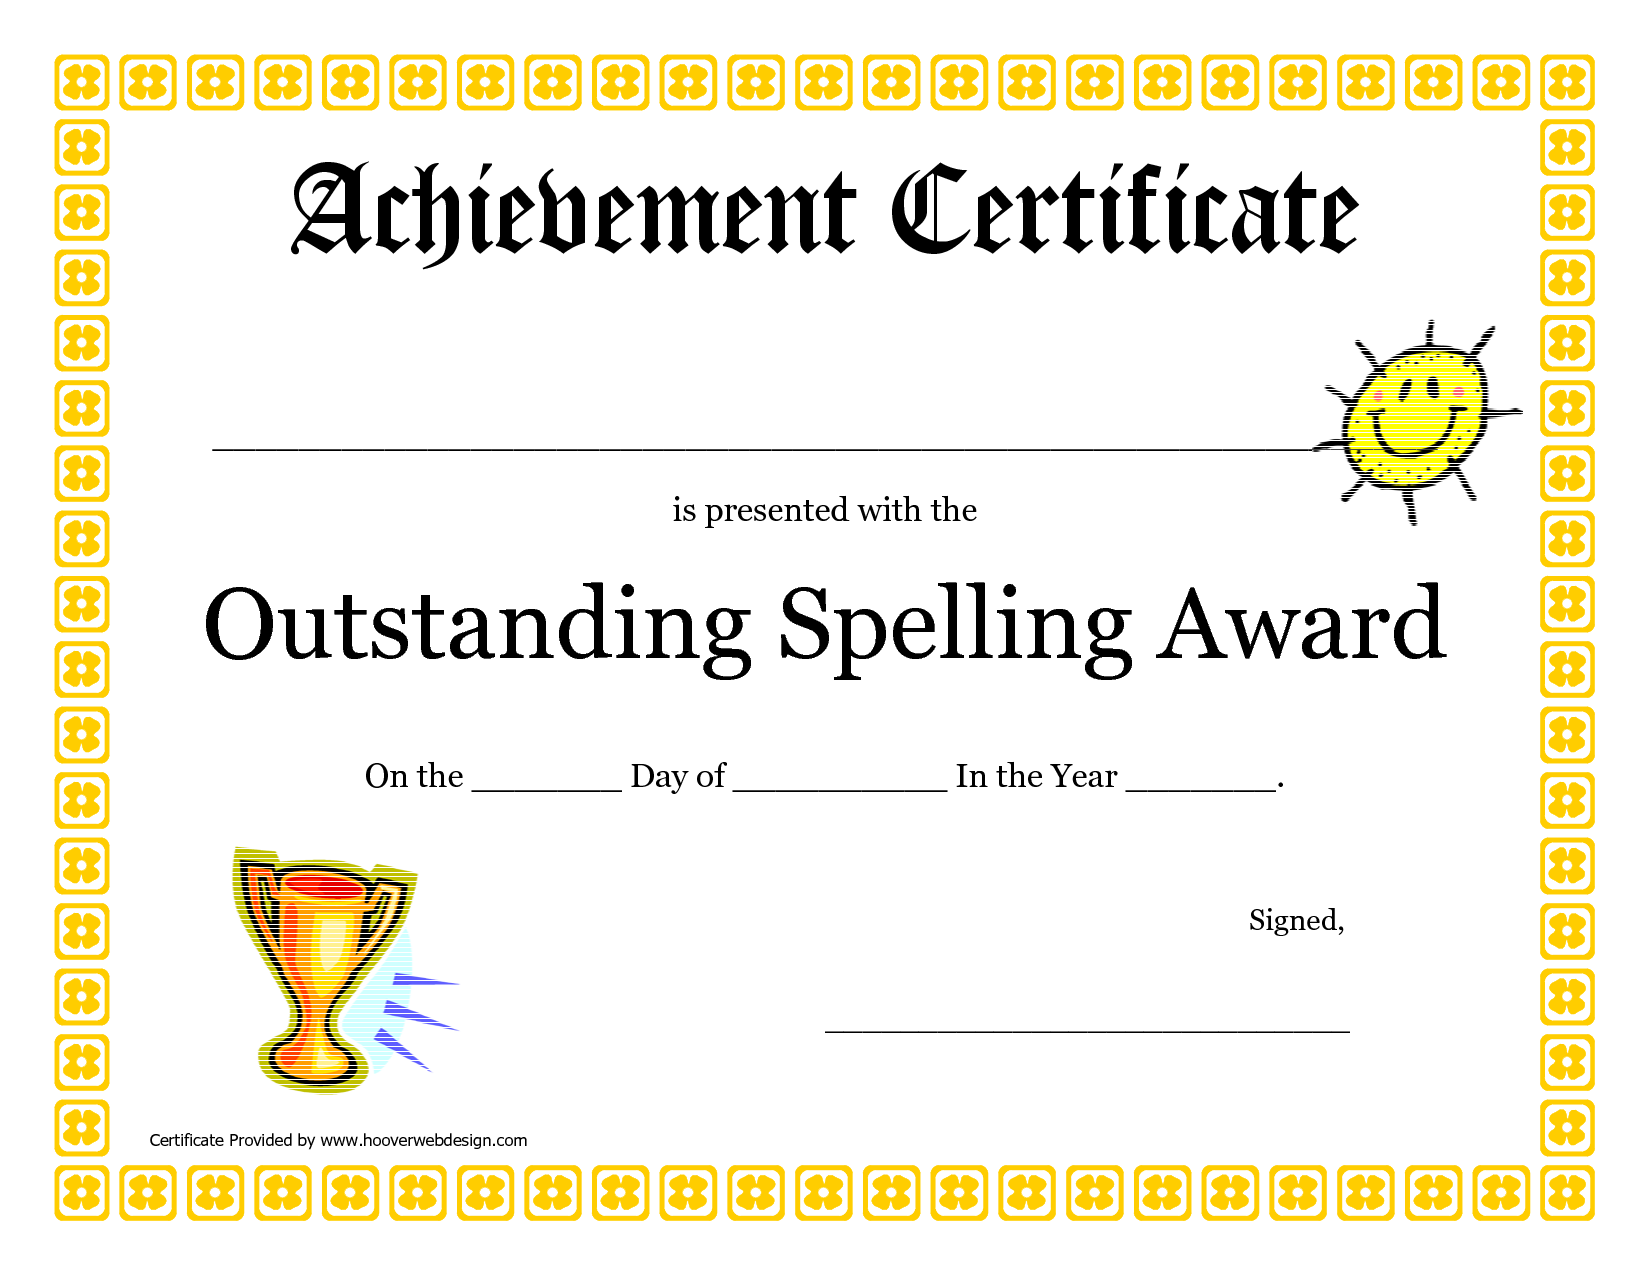 Outstanding Spelling Award Printable Certificate Pdf Picture  Free Customizable Printable Certificates Of Achievement